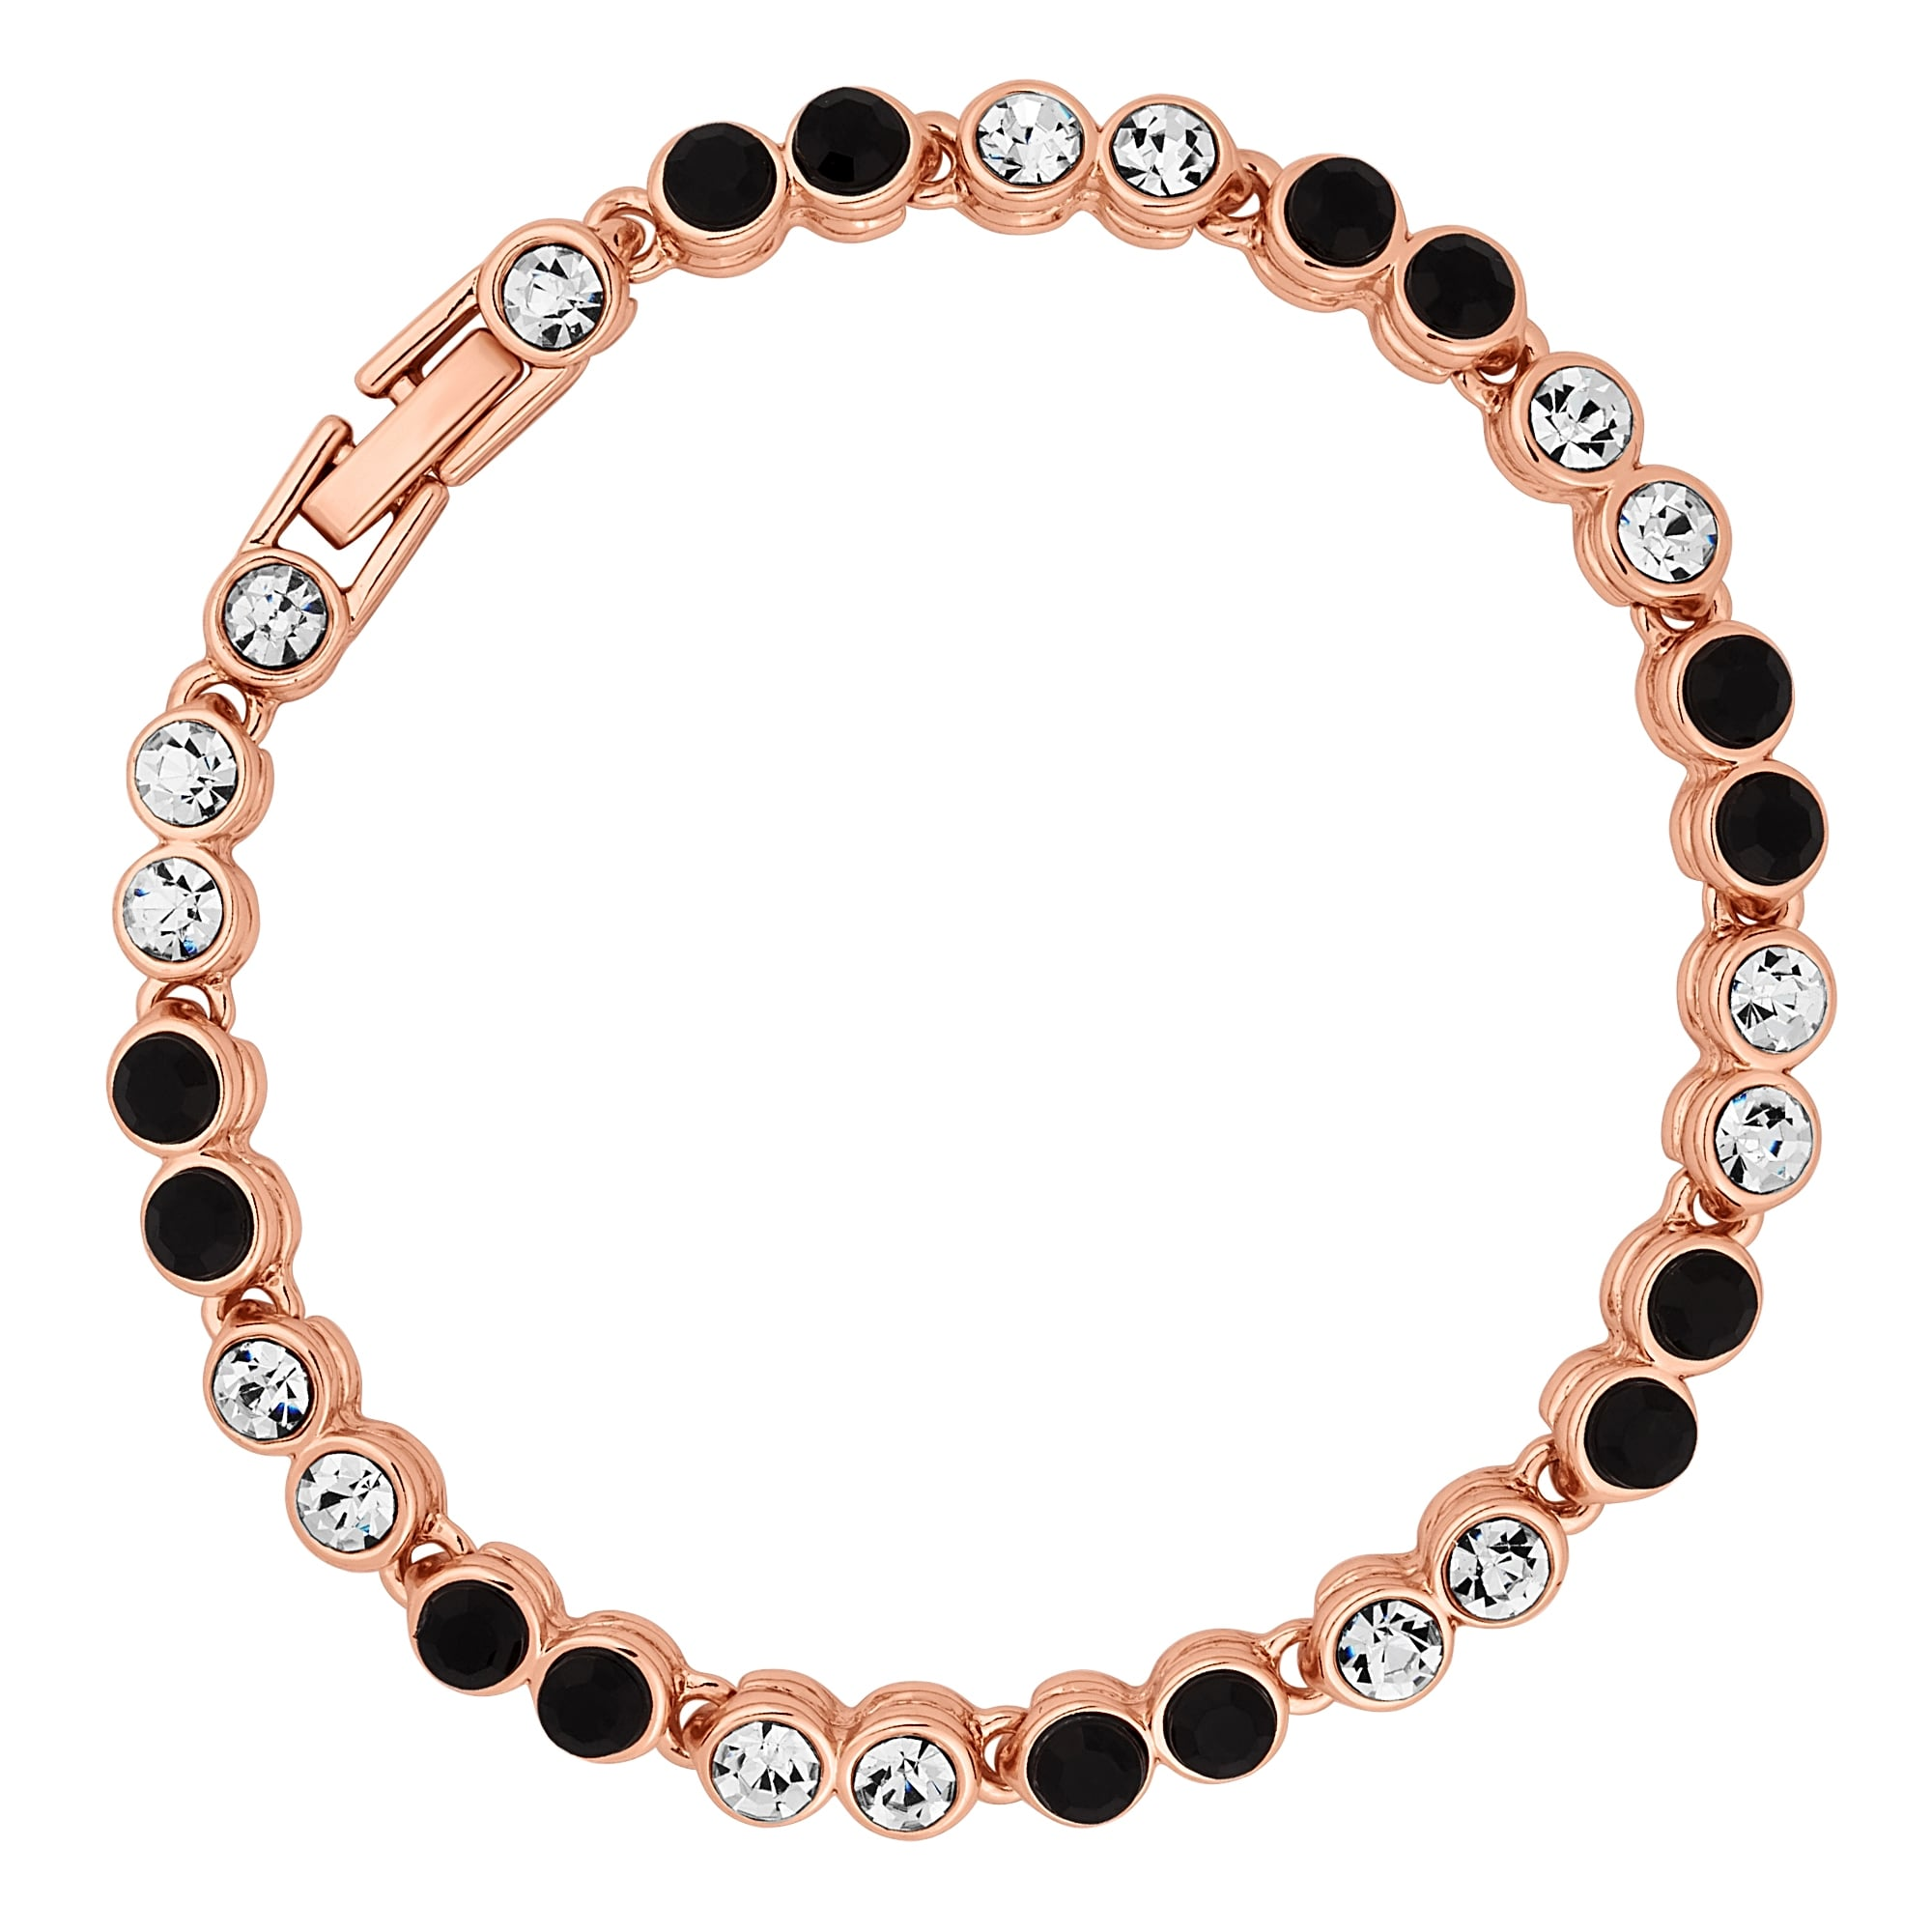 of double oyster gallery products the anklet bubble collections row bracelets bay chain tennis bracelet jewelry